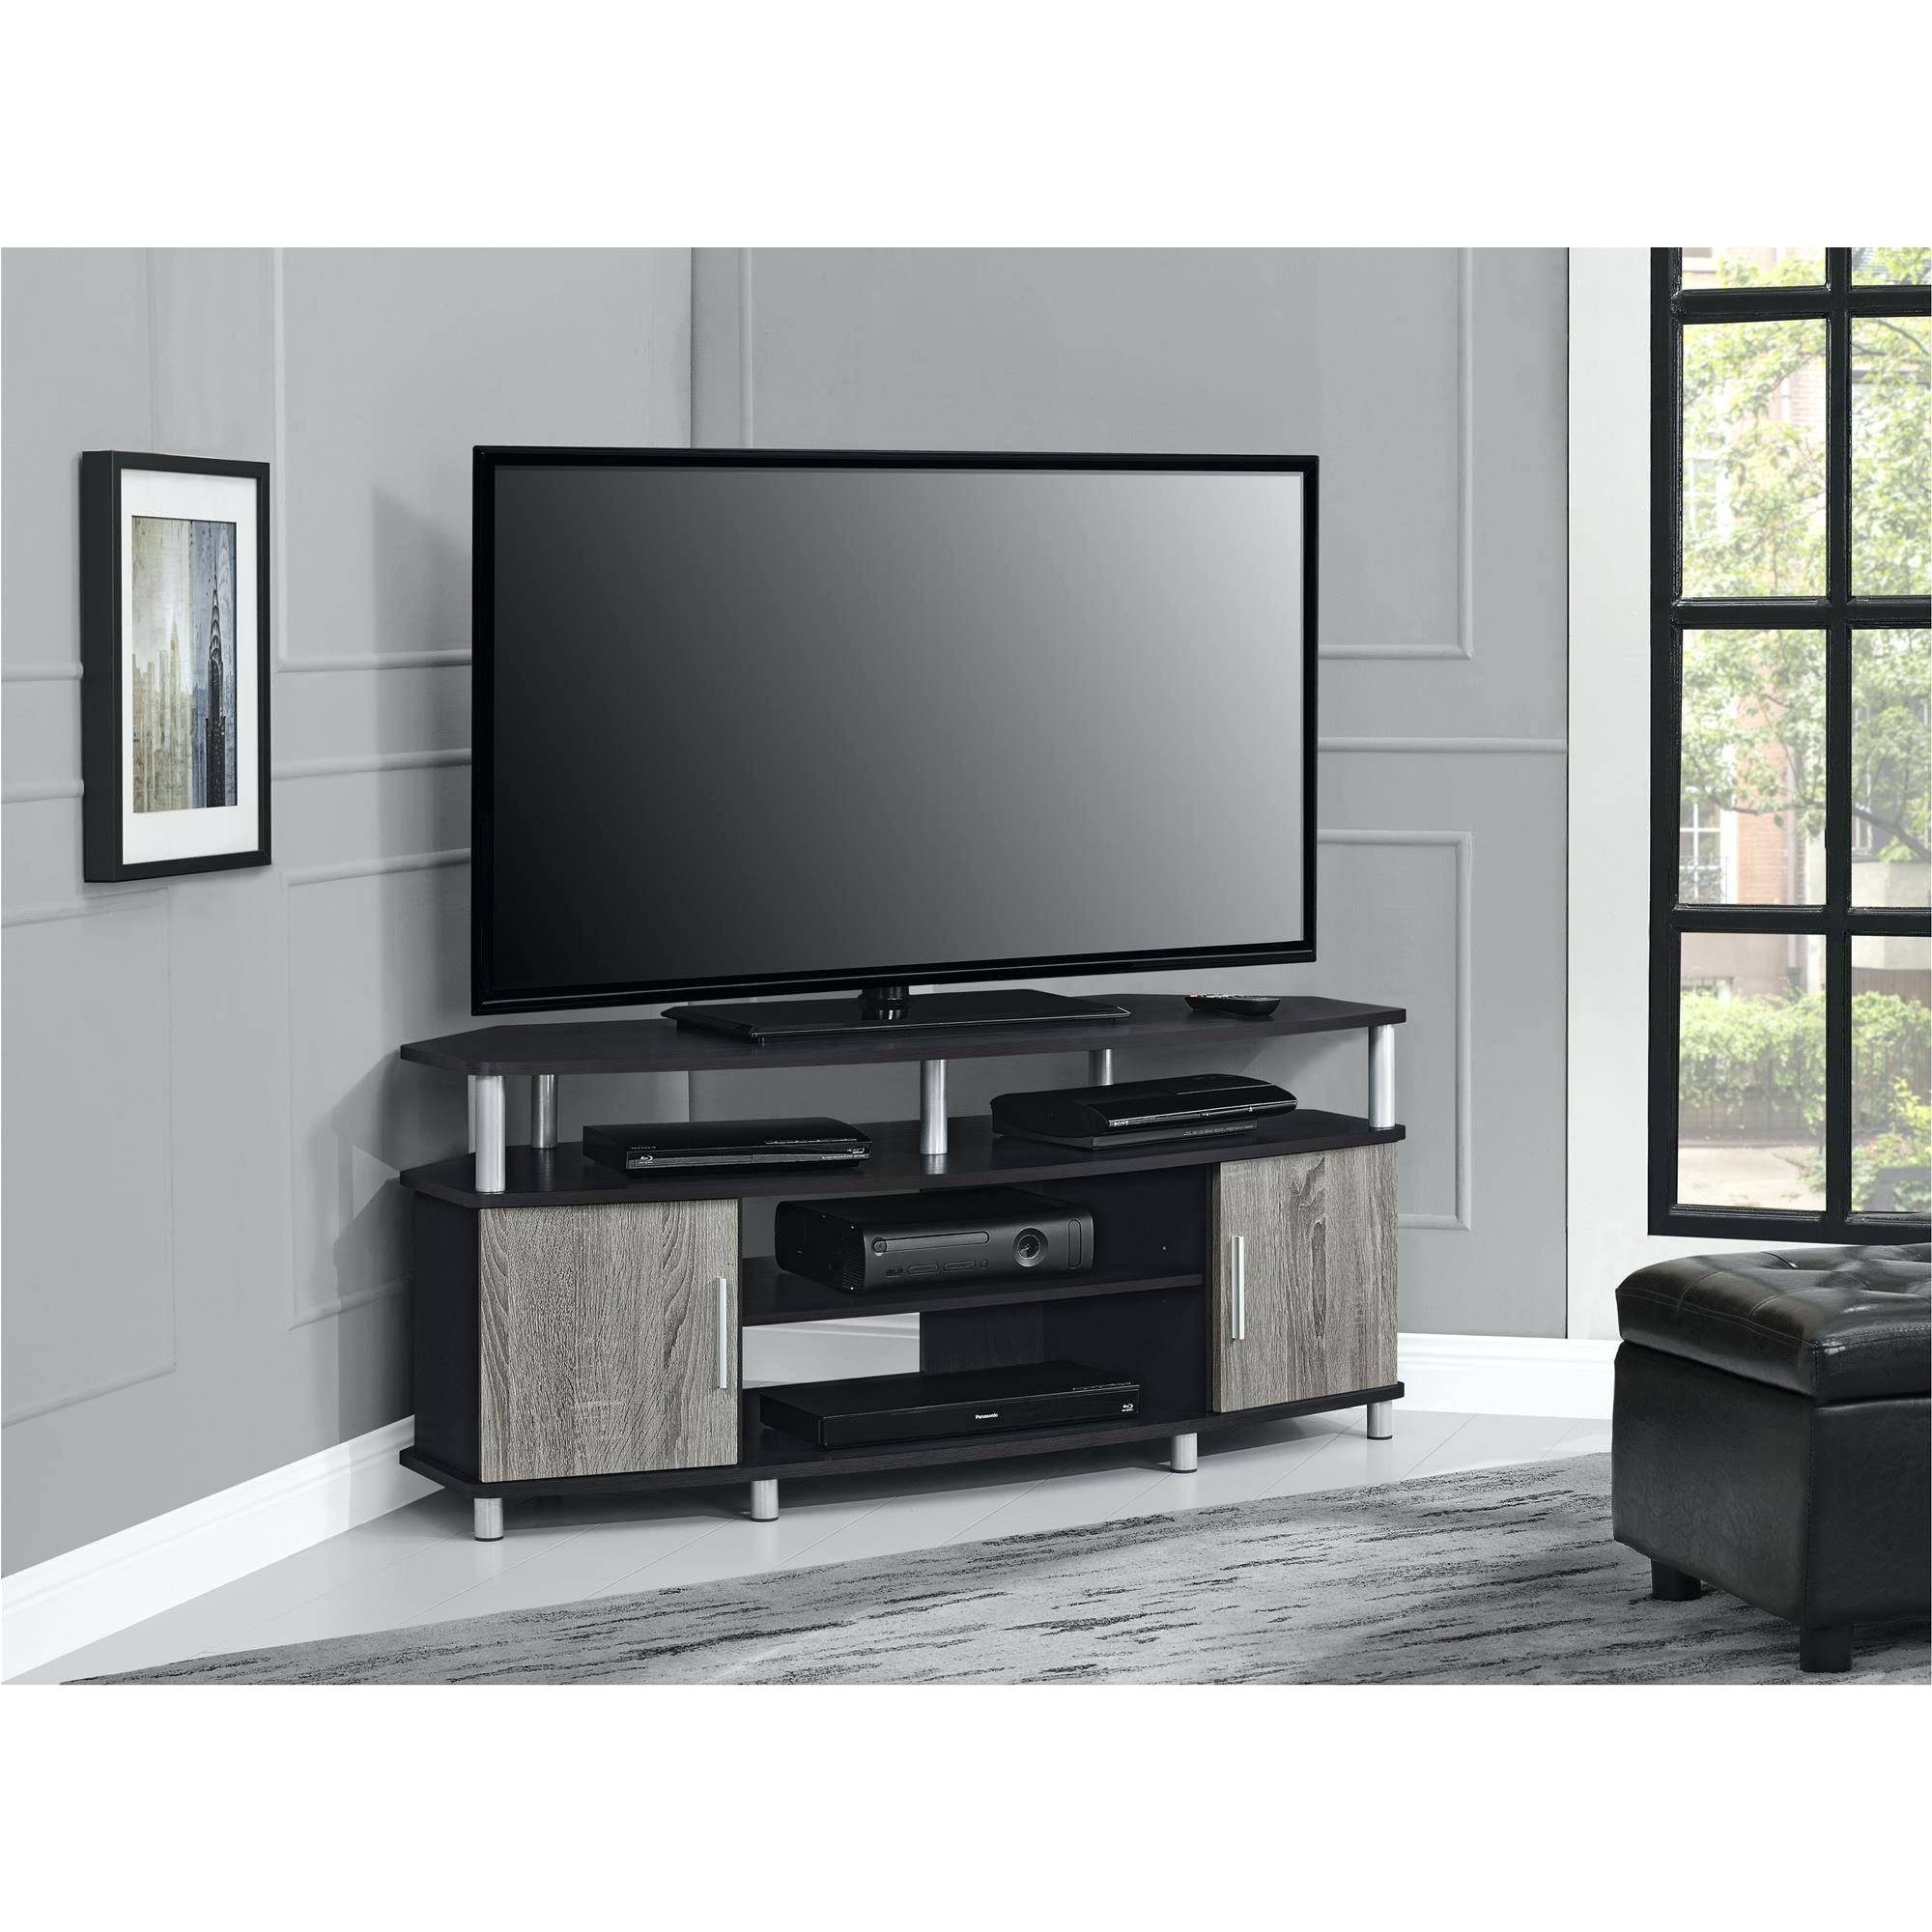 Tv Stand : Corner Tv Console 55 Inch Corner Tv Stand Flat Screen with Triangular Tv Stand (Image 11 of 15)